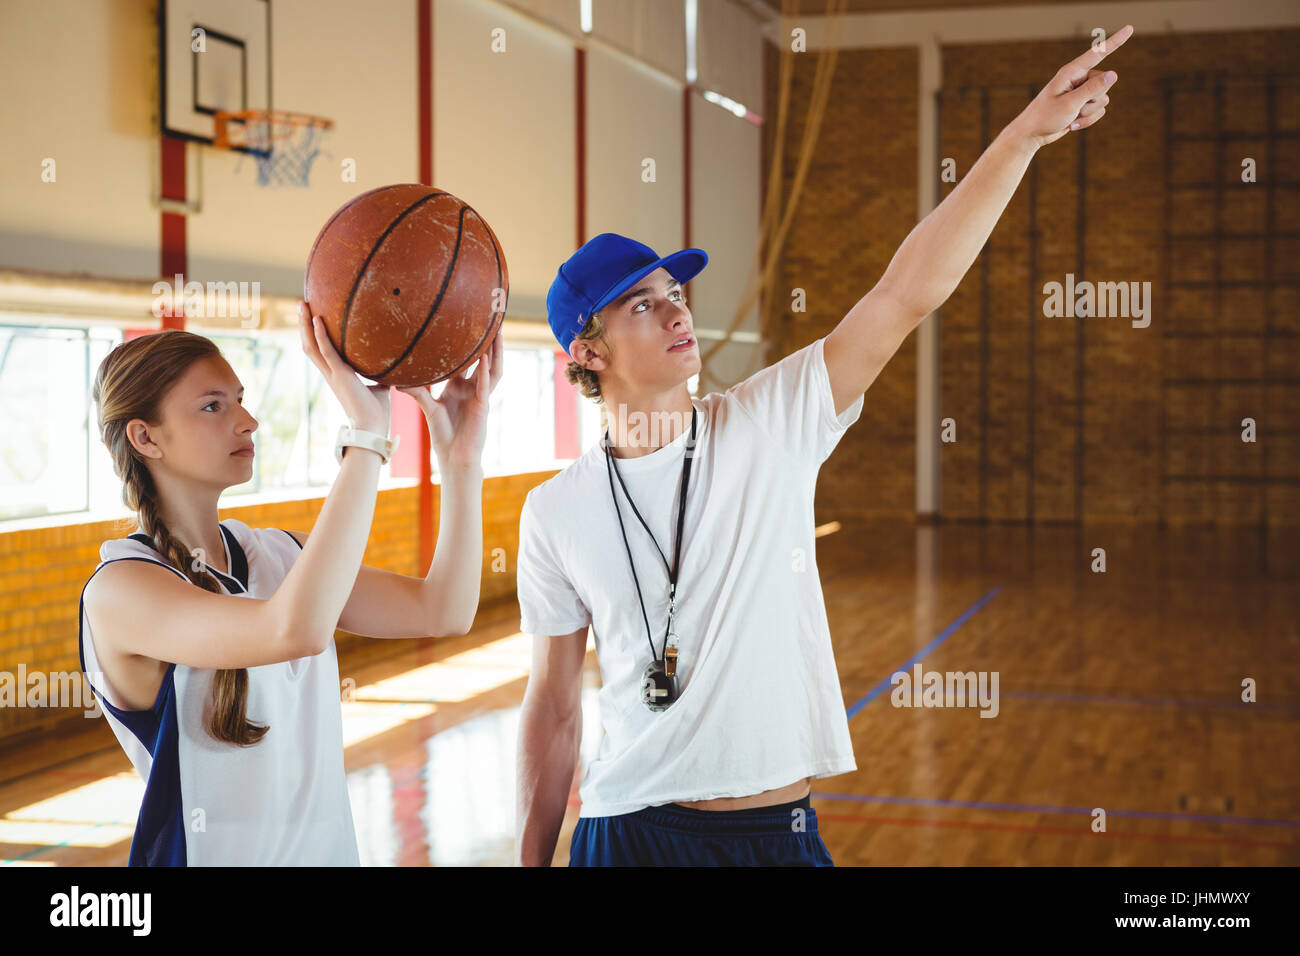 Male coach advising female basketball player while practicing in court - Stock Image